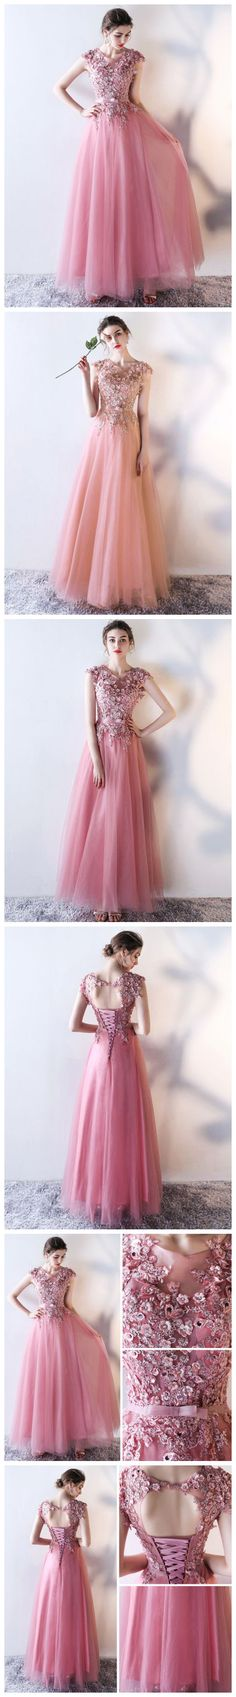 CHIC A-LINE SCOOP TULLE APPLIQUE MODEST PINK LONG PROM DRESS EVENING DRESS AM651 #amyprom  #fashion #party #evening #chic #promdress #promdresslong #longpromdress #eveningdress  #pink